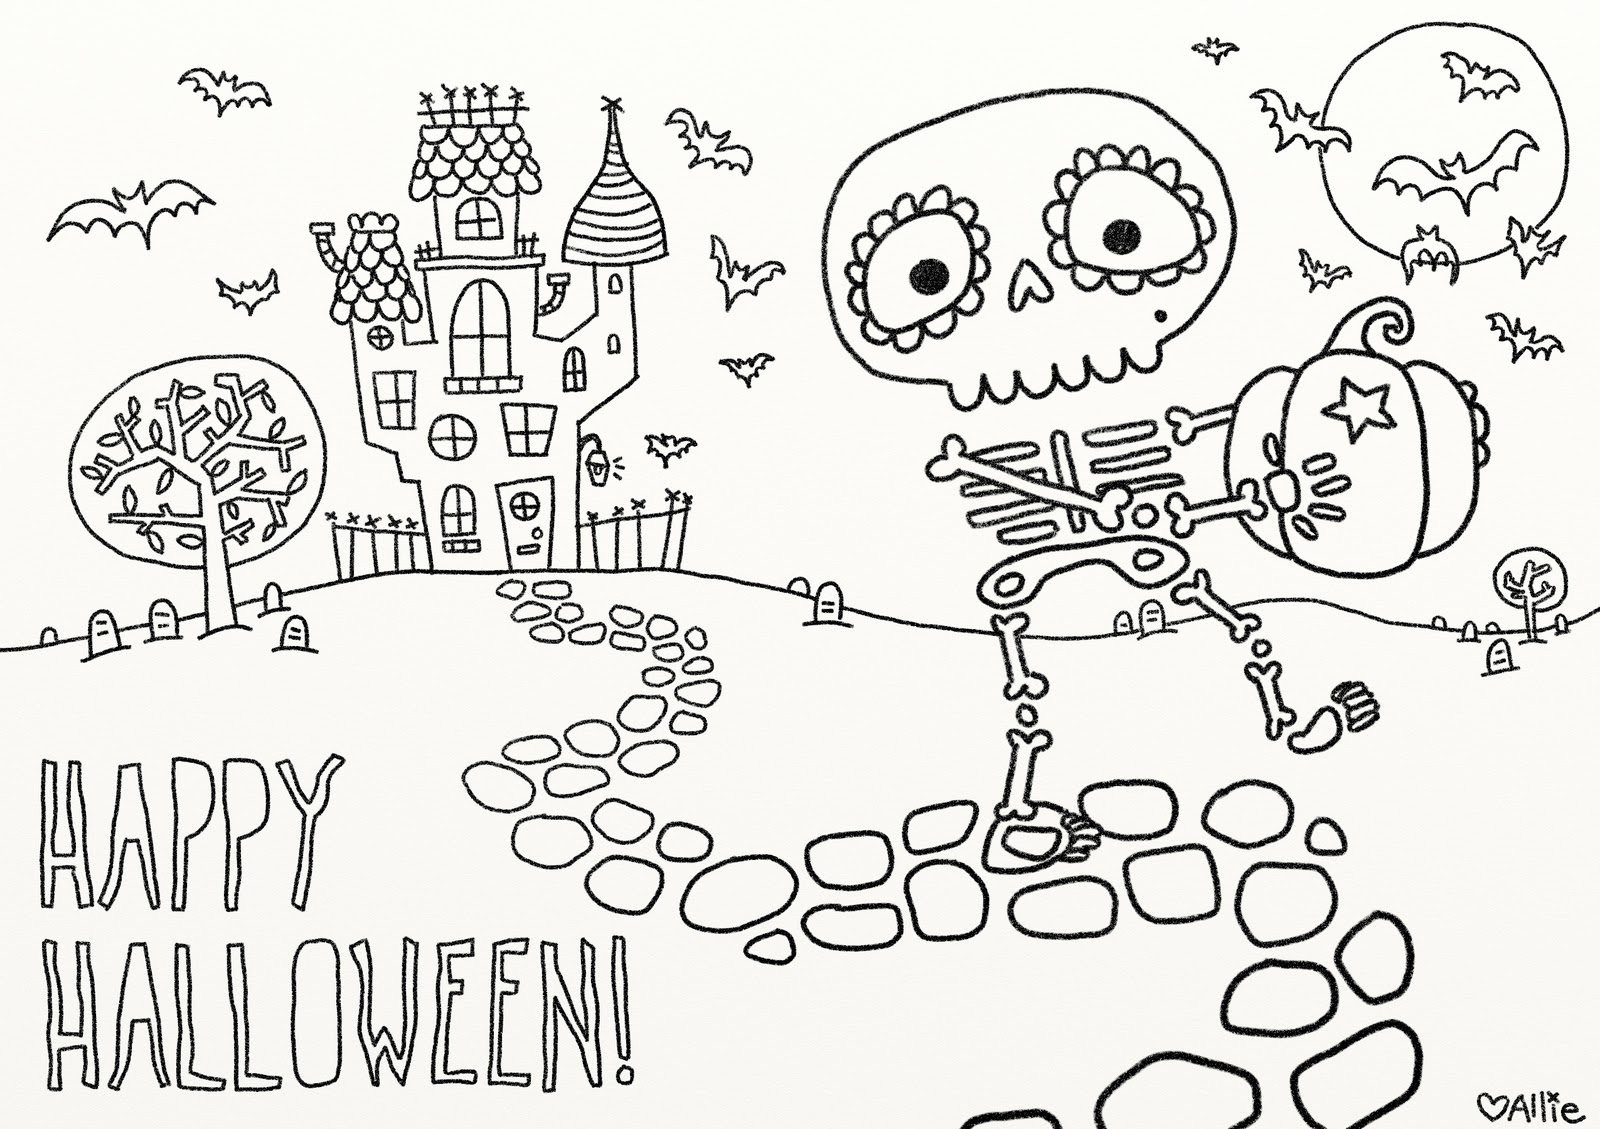 9 Fun Free Printable Halloween Coloring Pages - Printable Halloween Cards To Color For Free